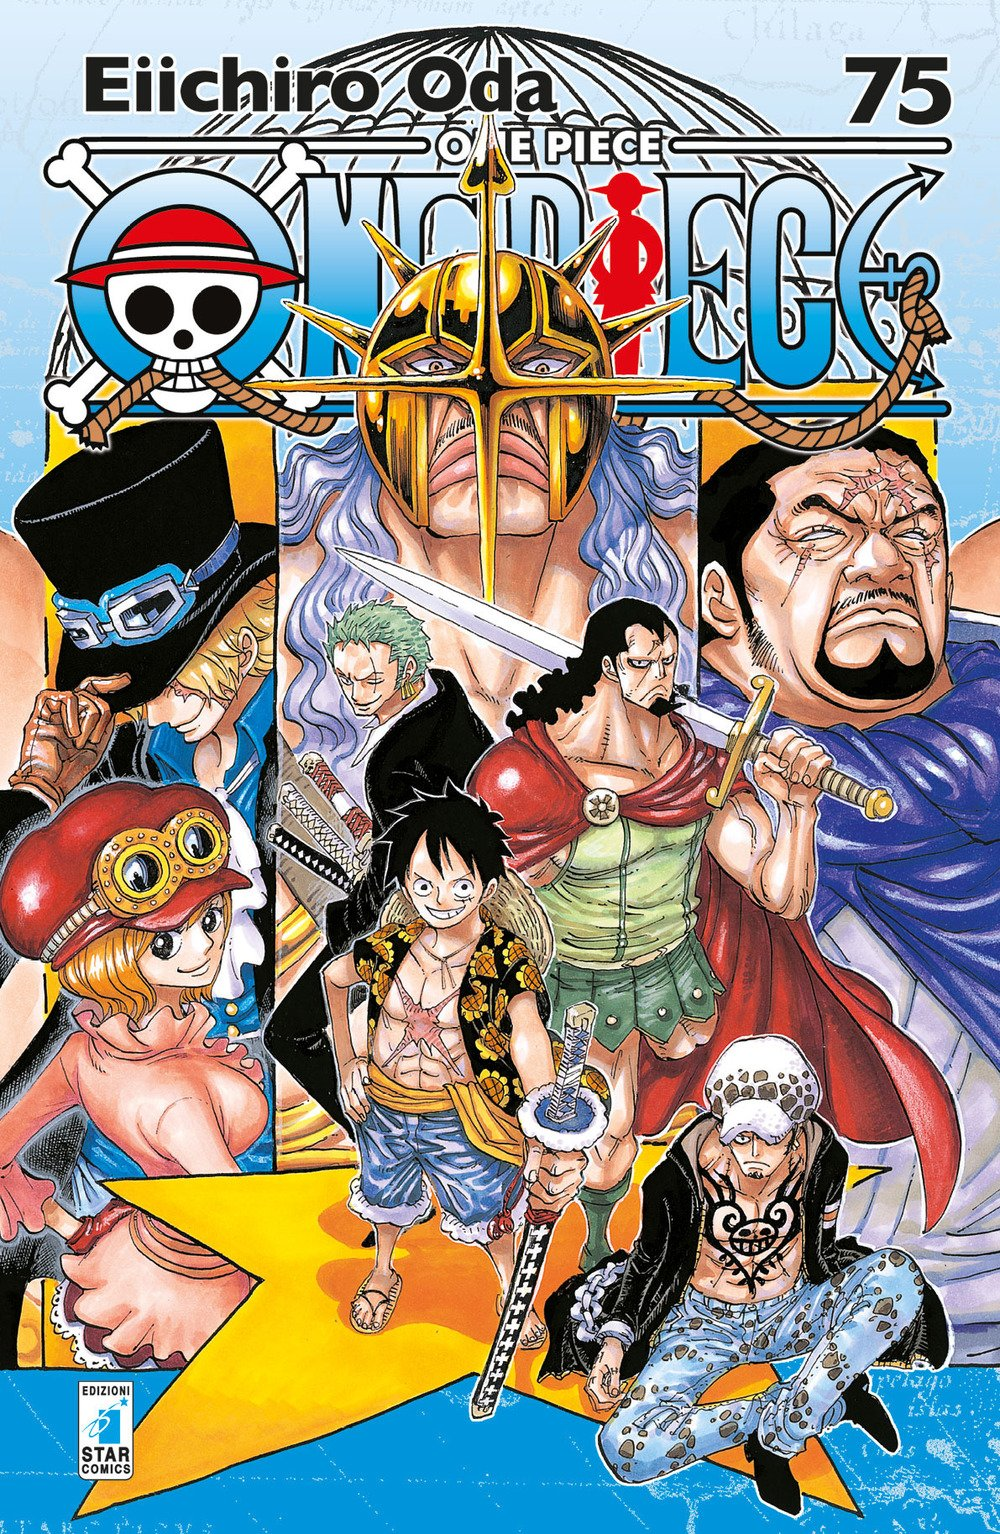 One piece. New edition: 75 Copertina flessibile – 16 ott 2017 Eiichiro Oda Yupa Star Comics 8822607414